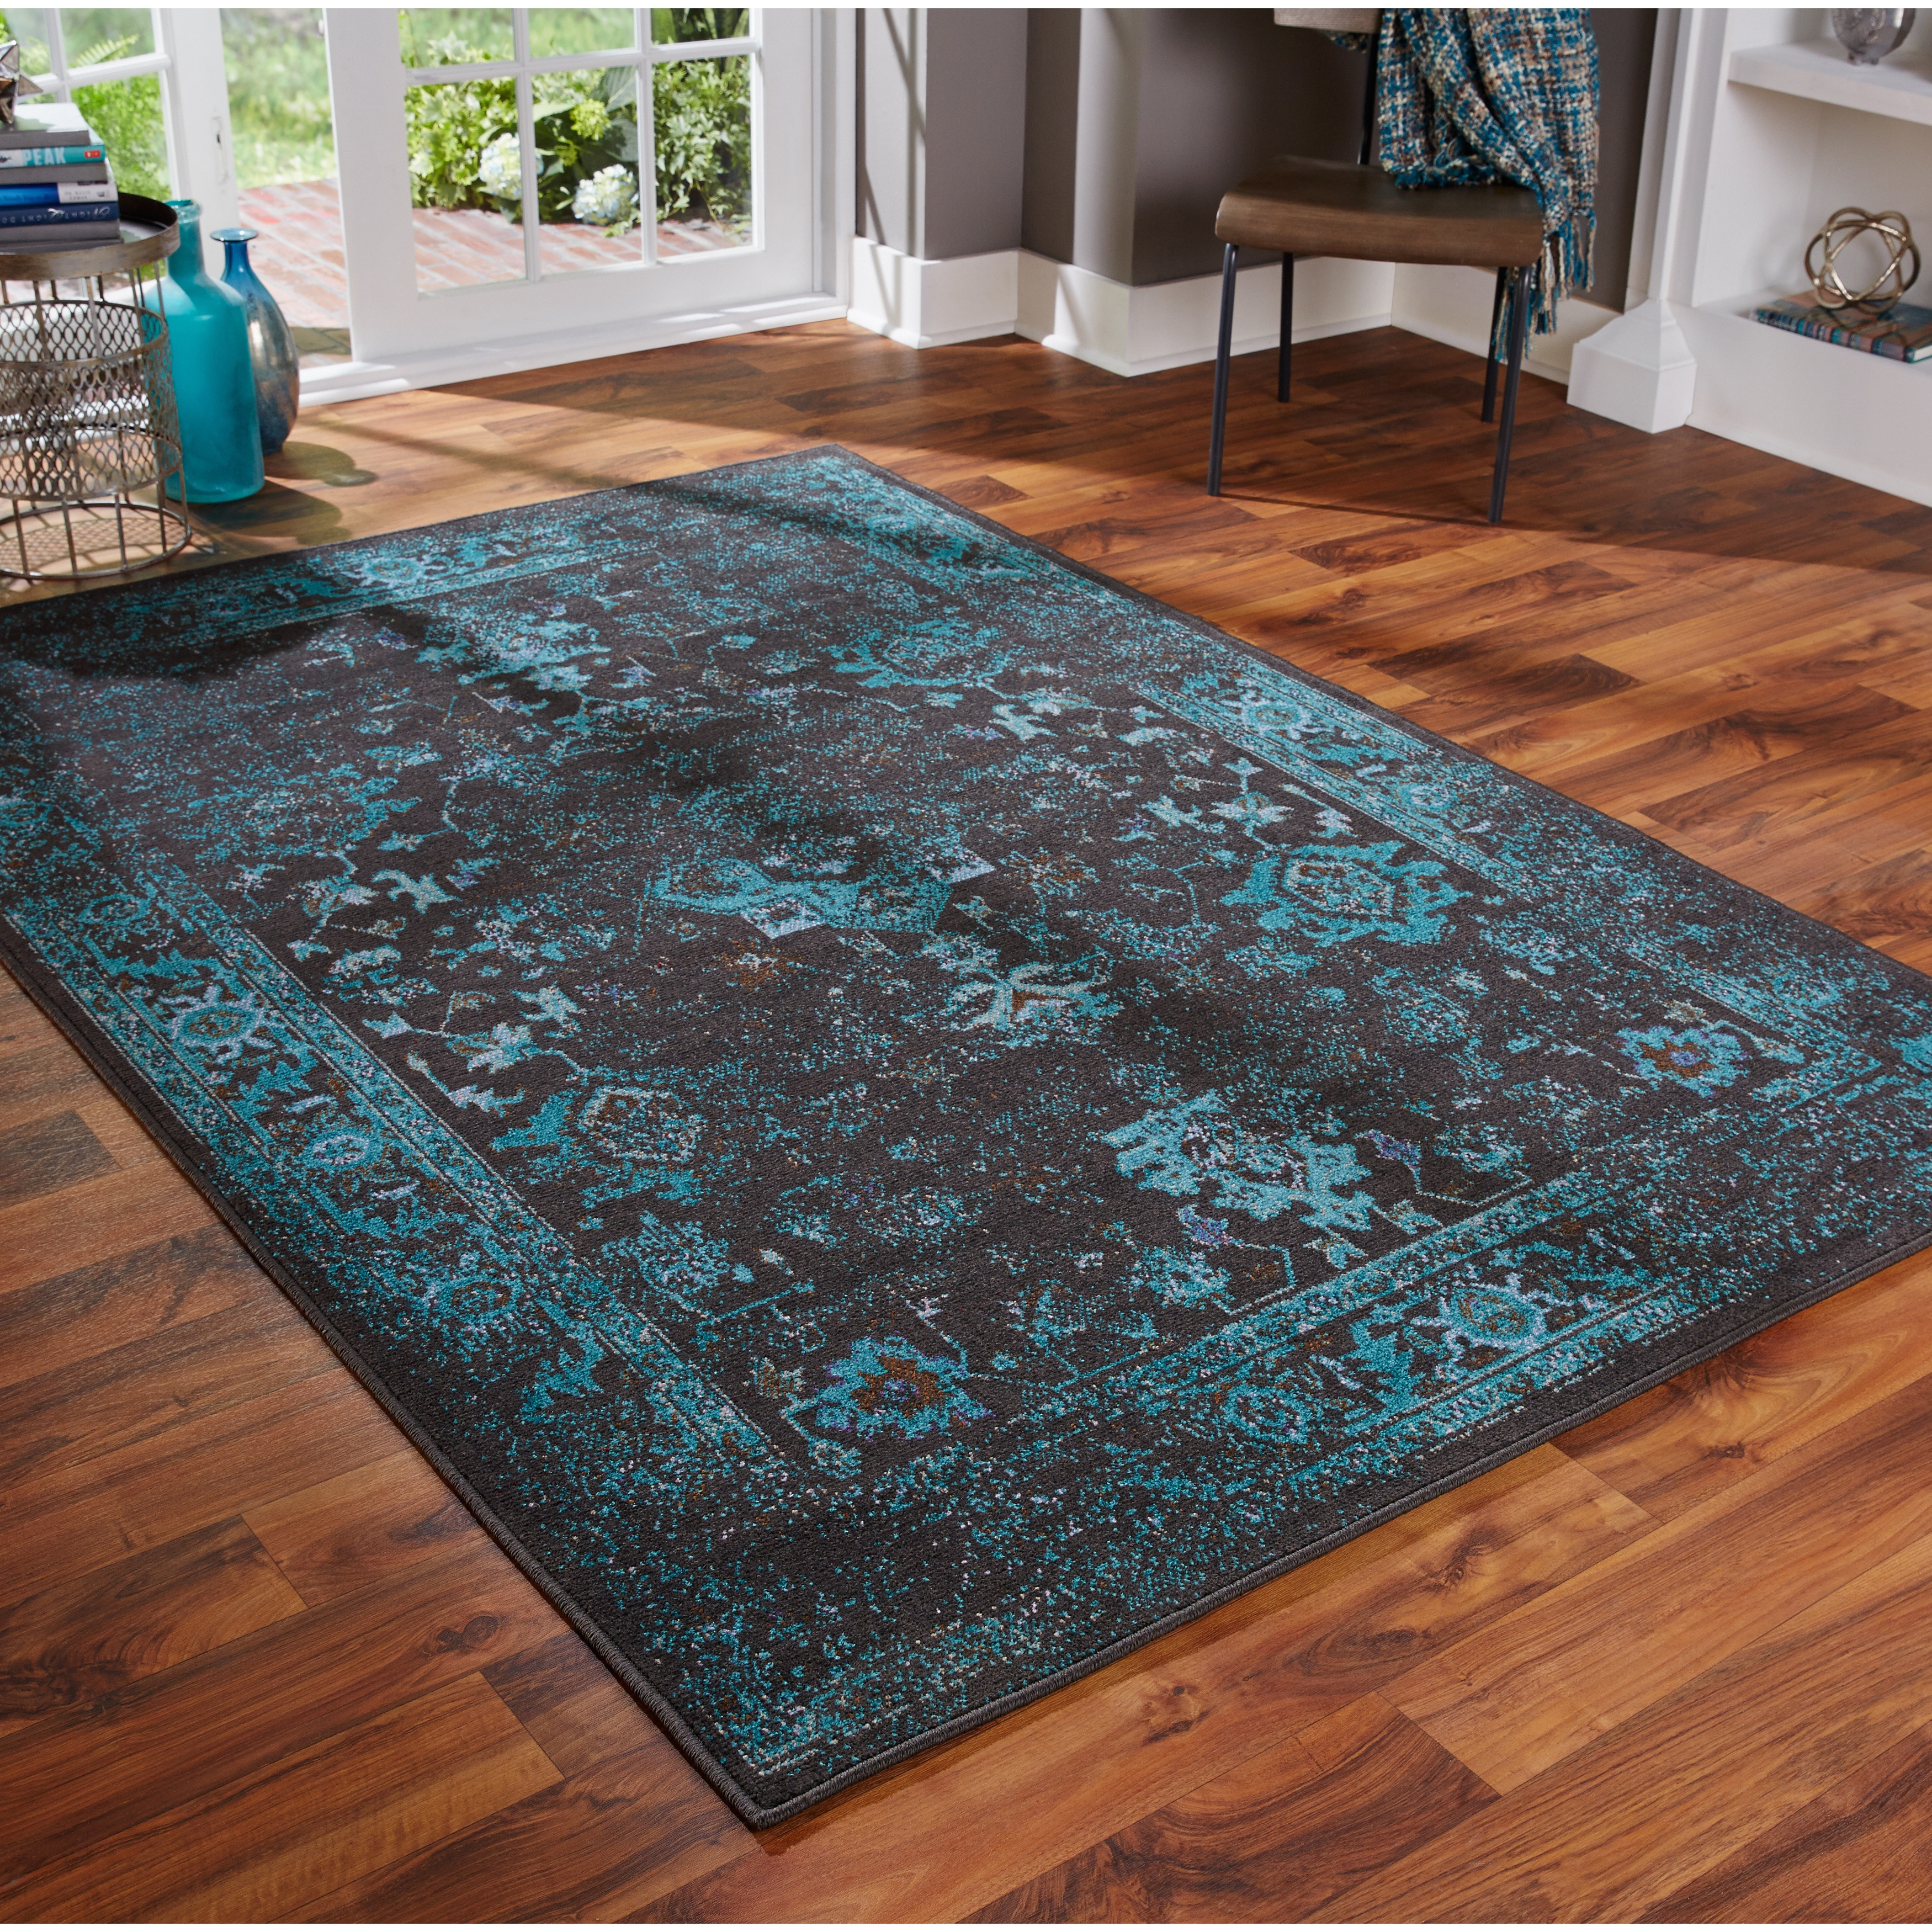 Shop Distressed Traditional Overdyed Black Teal Area Rug Multiple